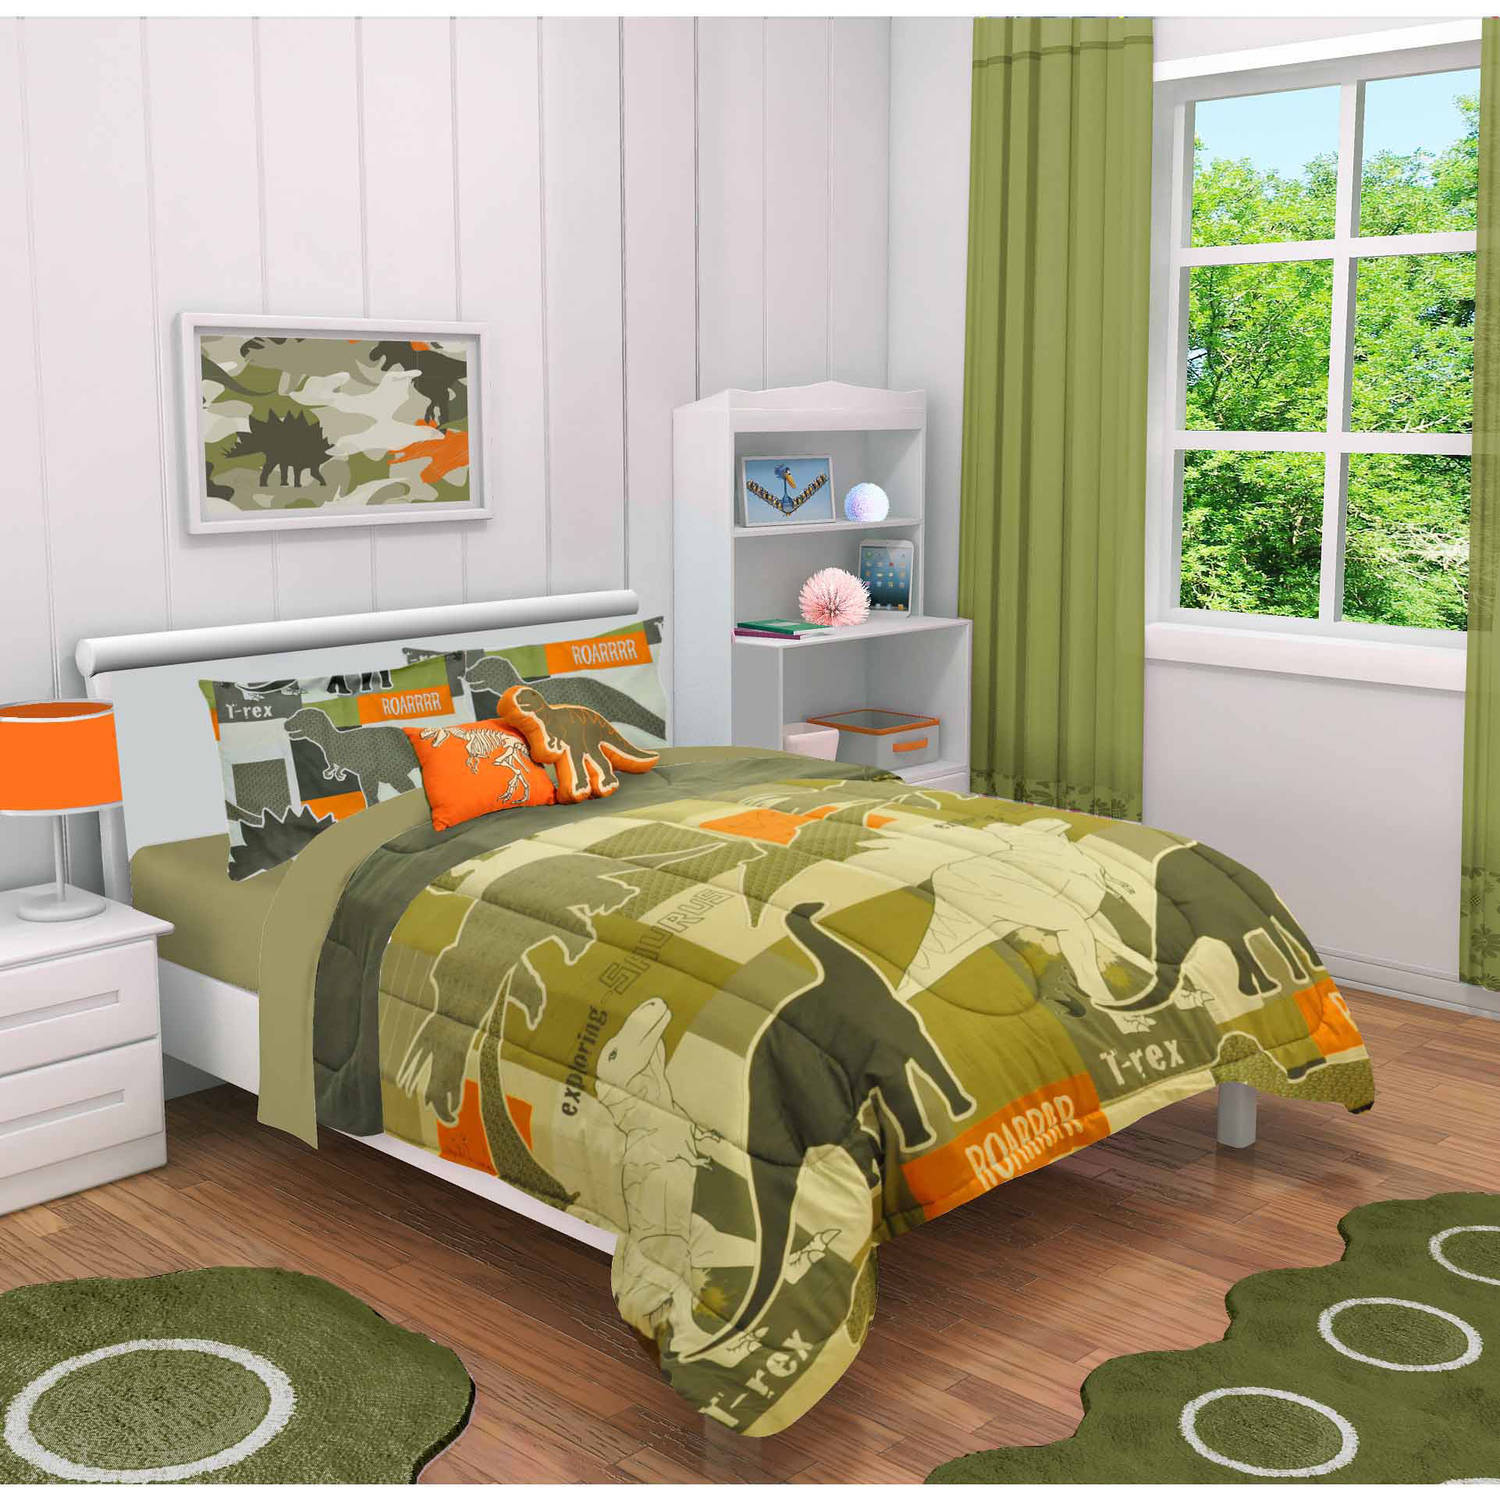 house cool of camo pattern image kids design bedding bed camouflage for boys